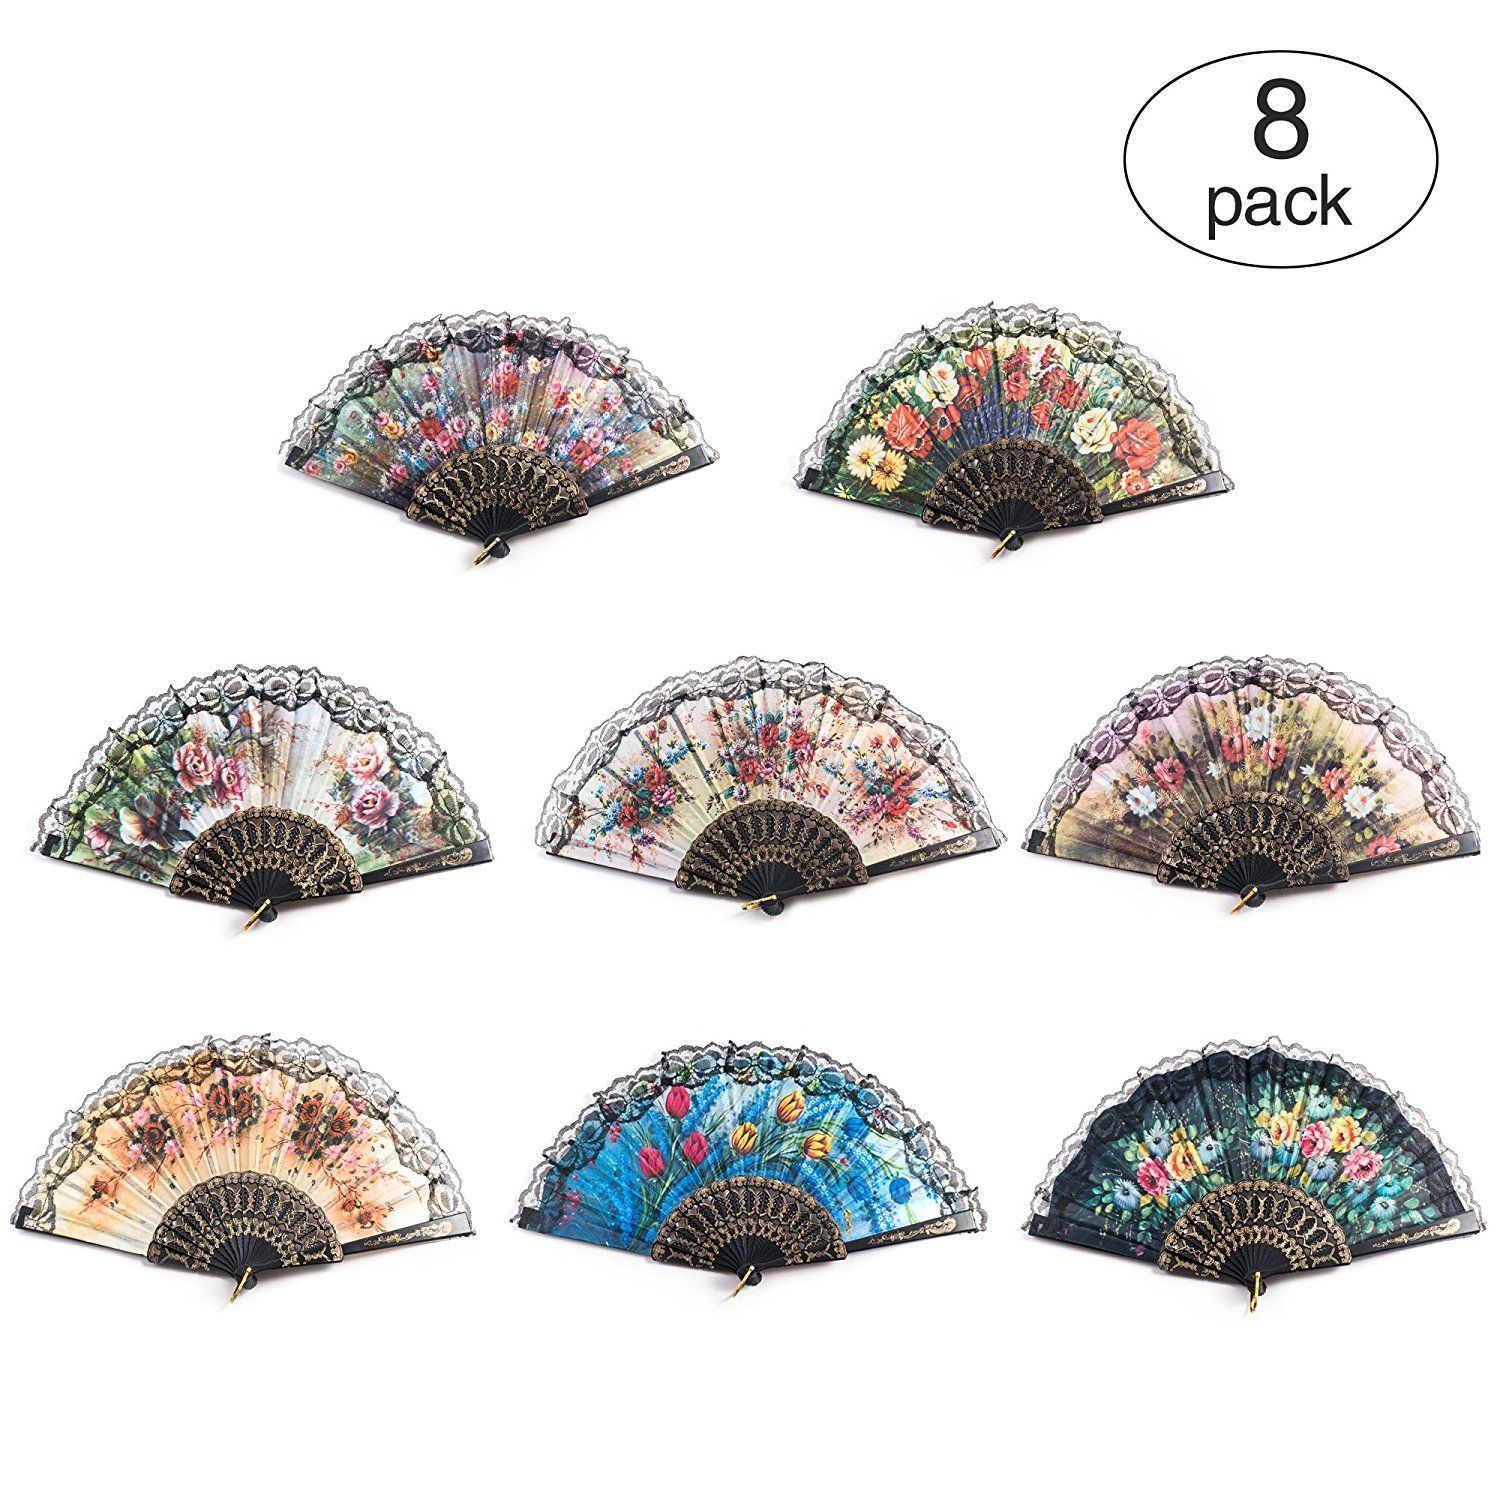 8 PCS Spanish Floral Folding Hand Fan Vintage Retro Pattern Fabric Fans ( 8 different patterns ) HUIHUIYANG